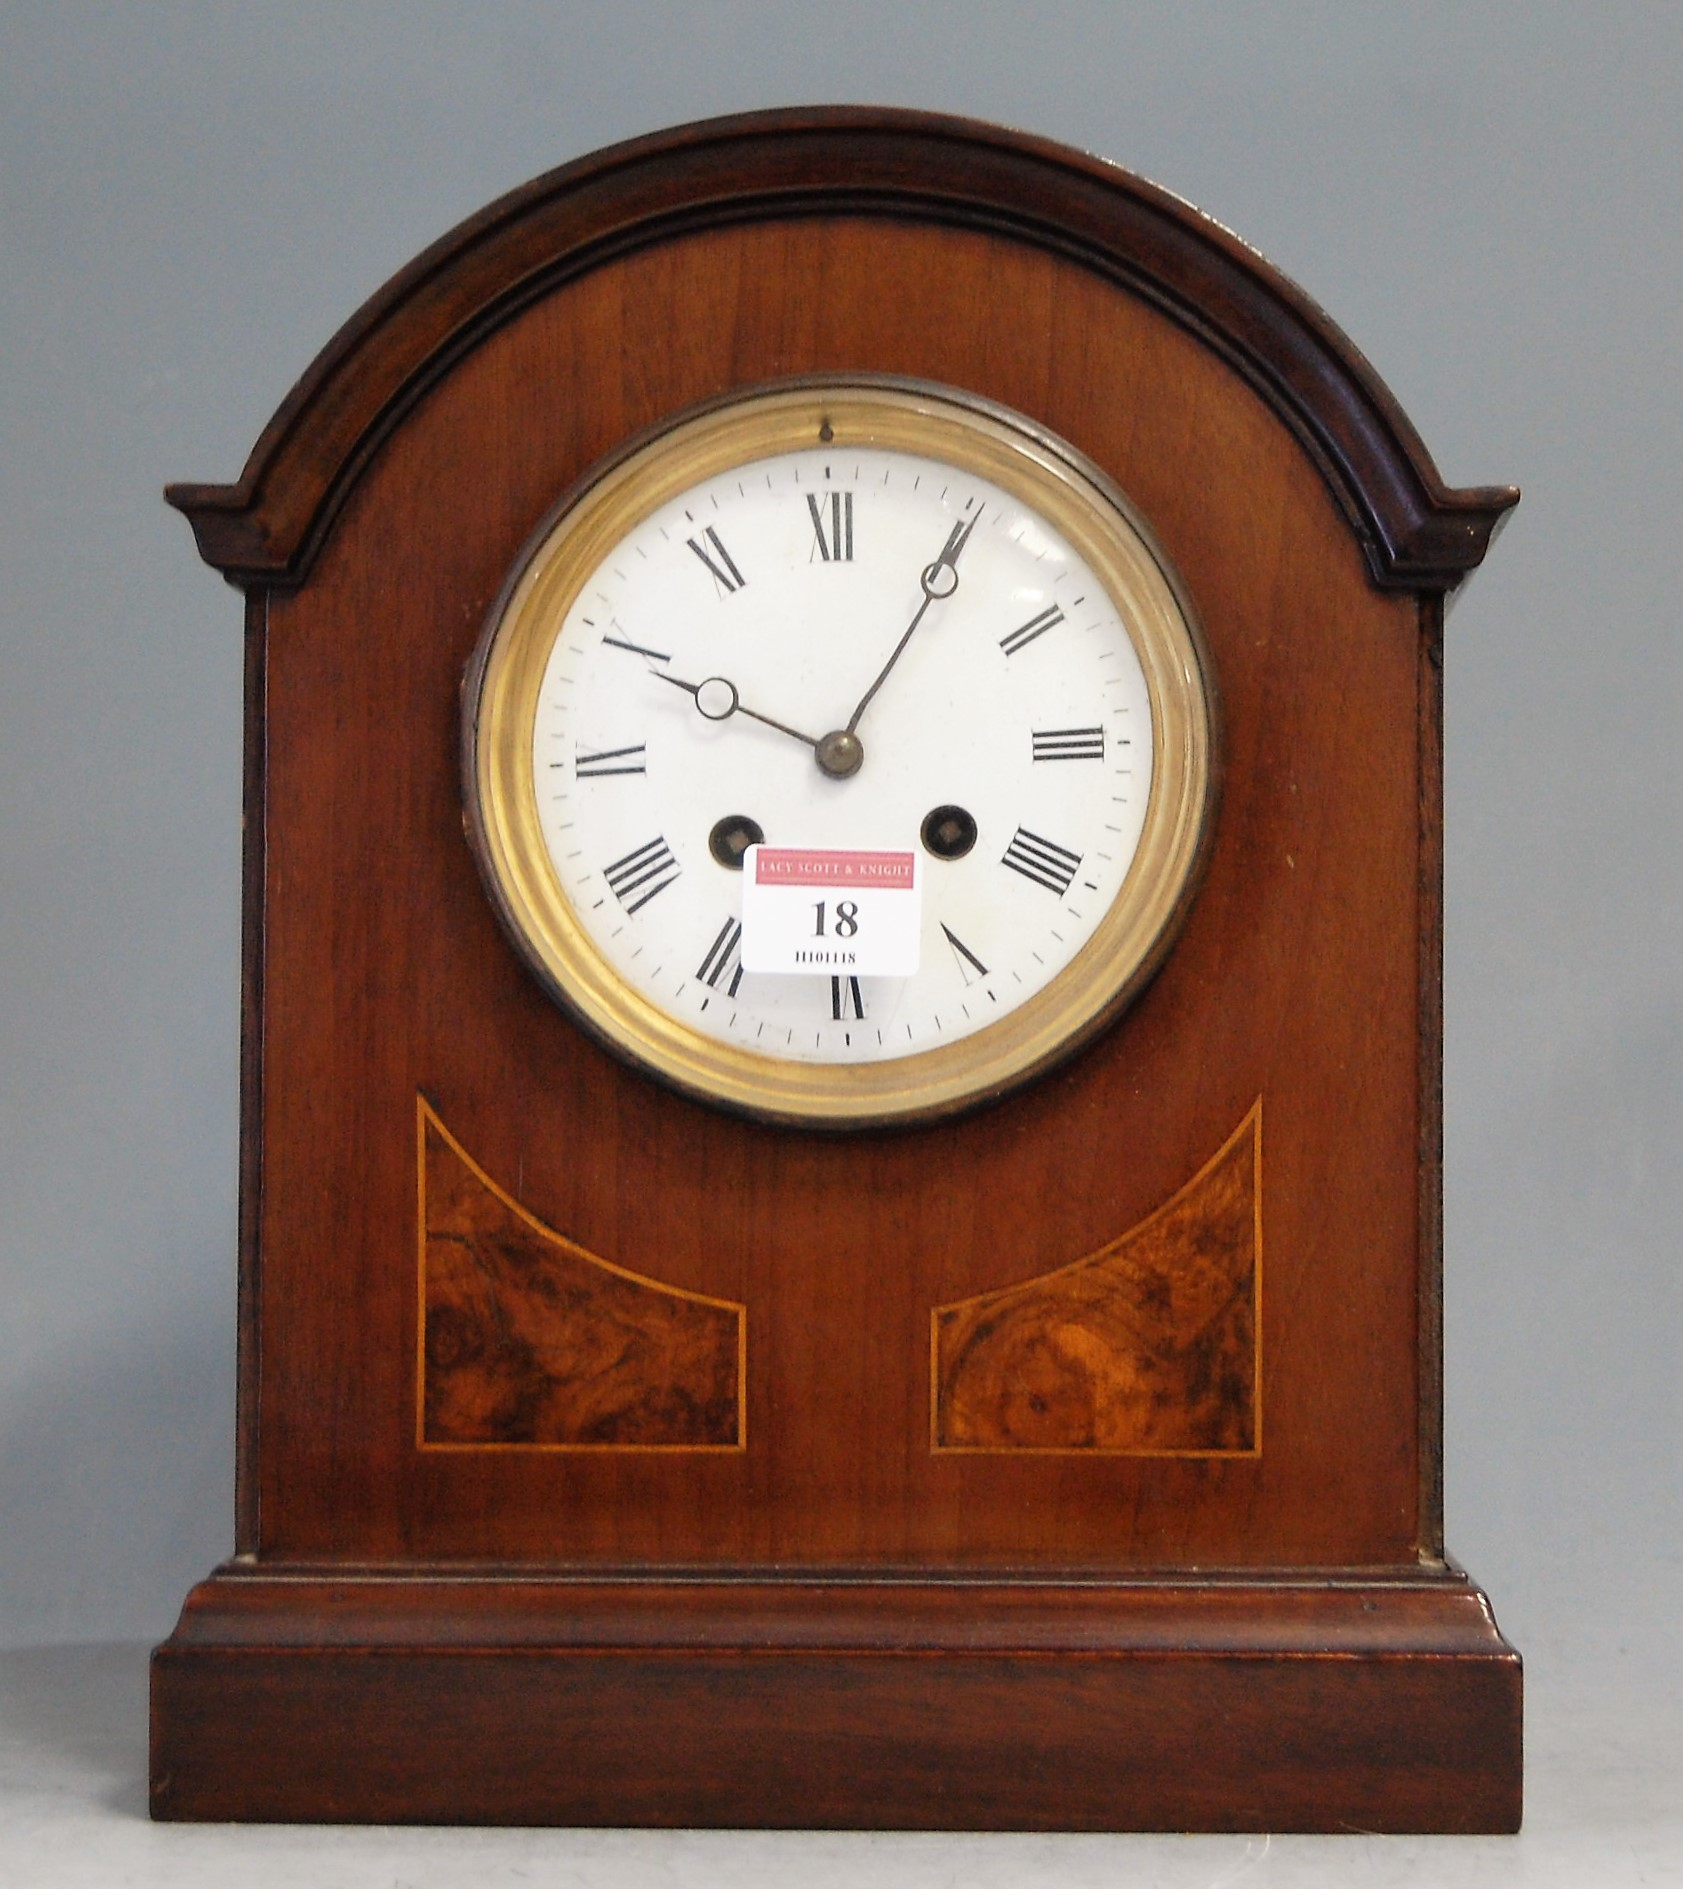 Lot 18 - An Edwardian mahogany cased mantel clock, having enamelled dial with Roman numerals and eight day